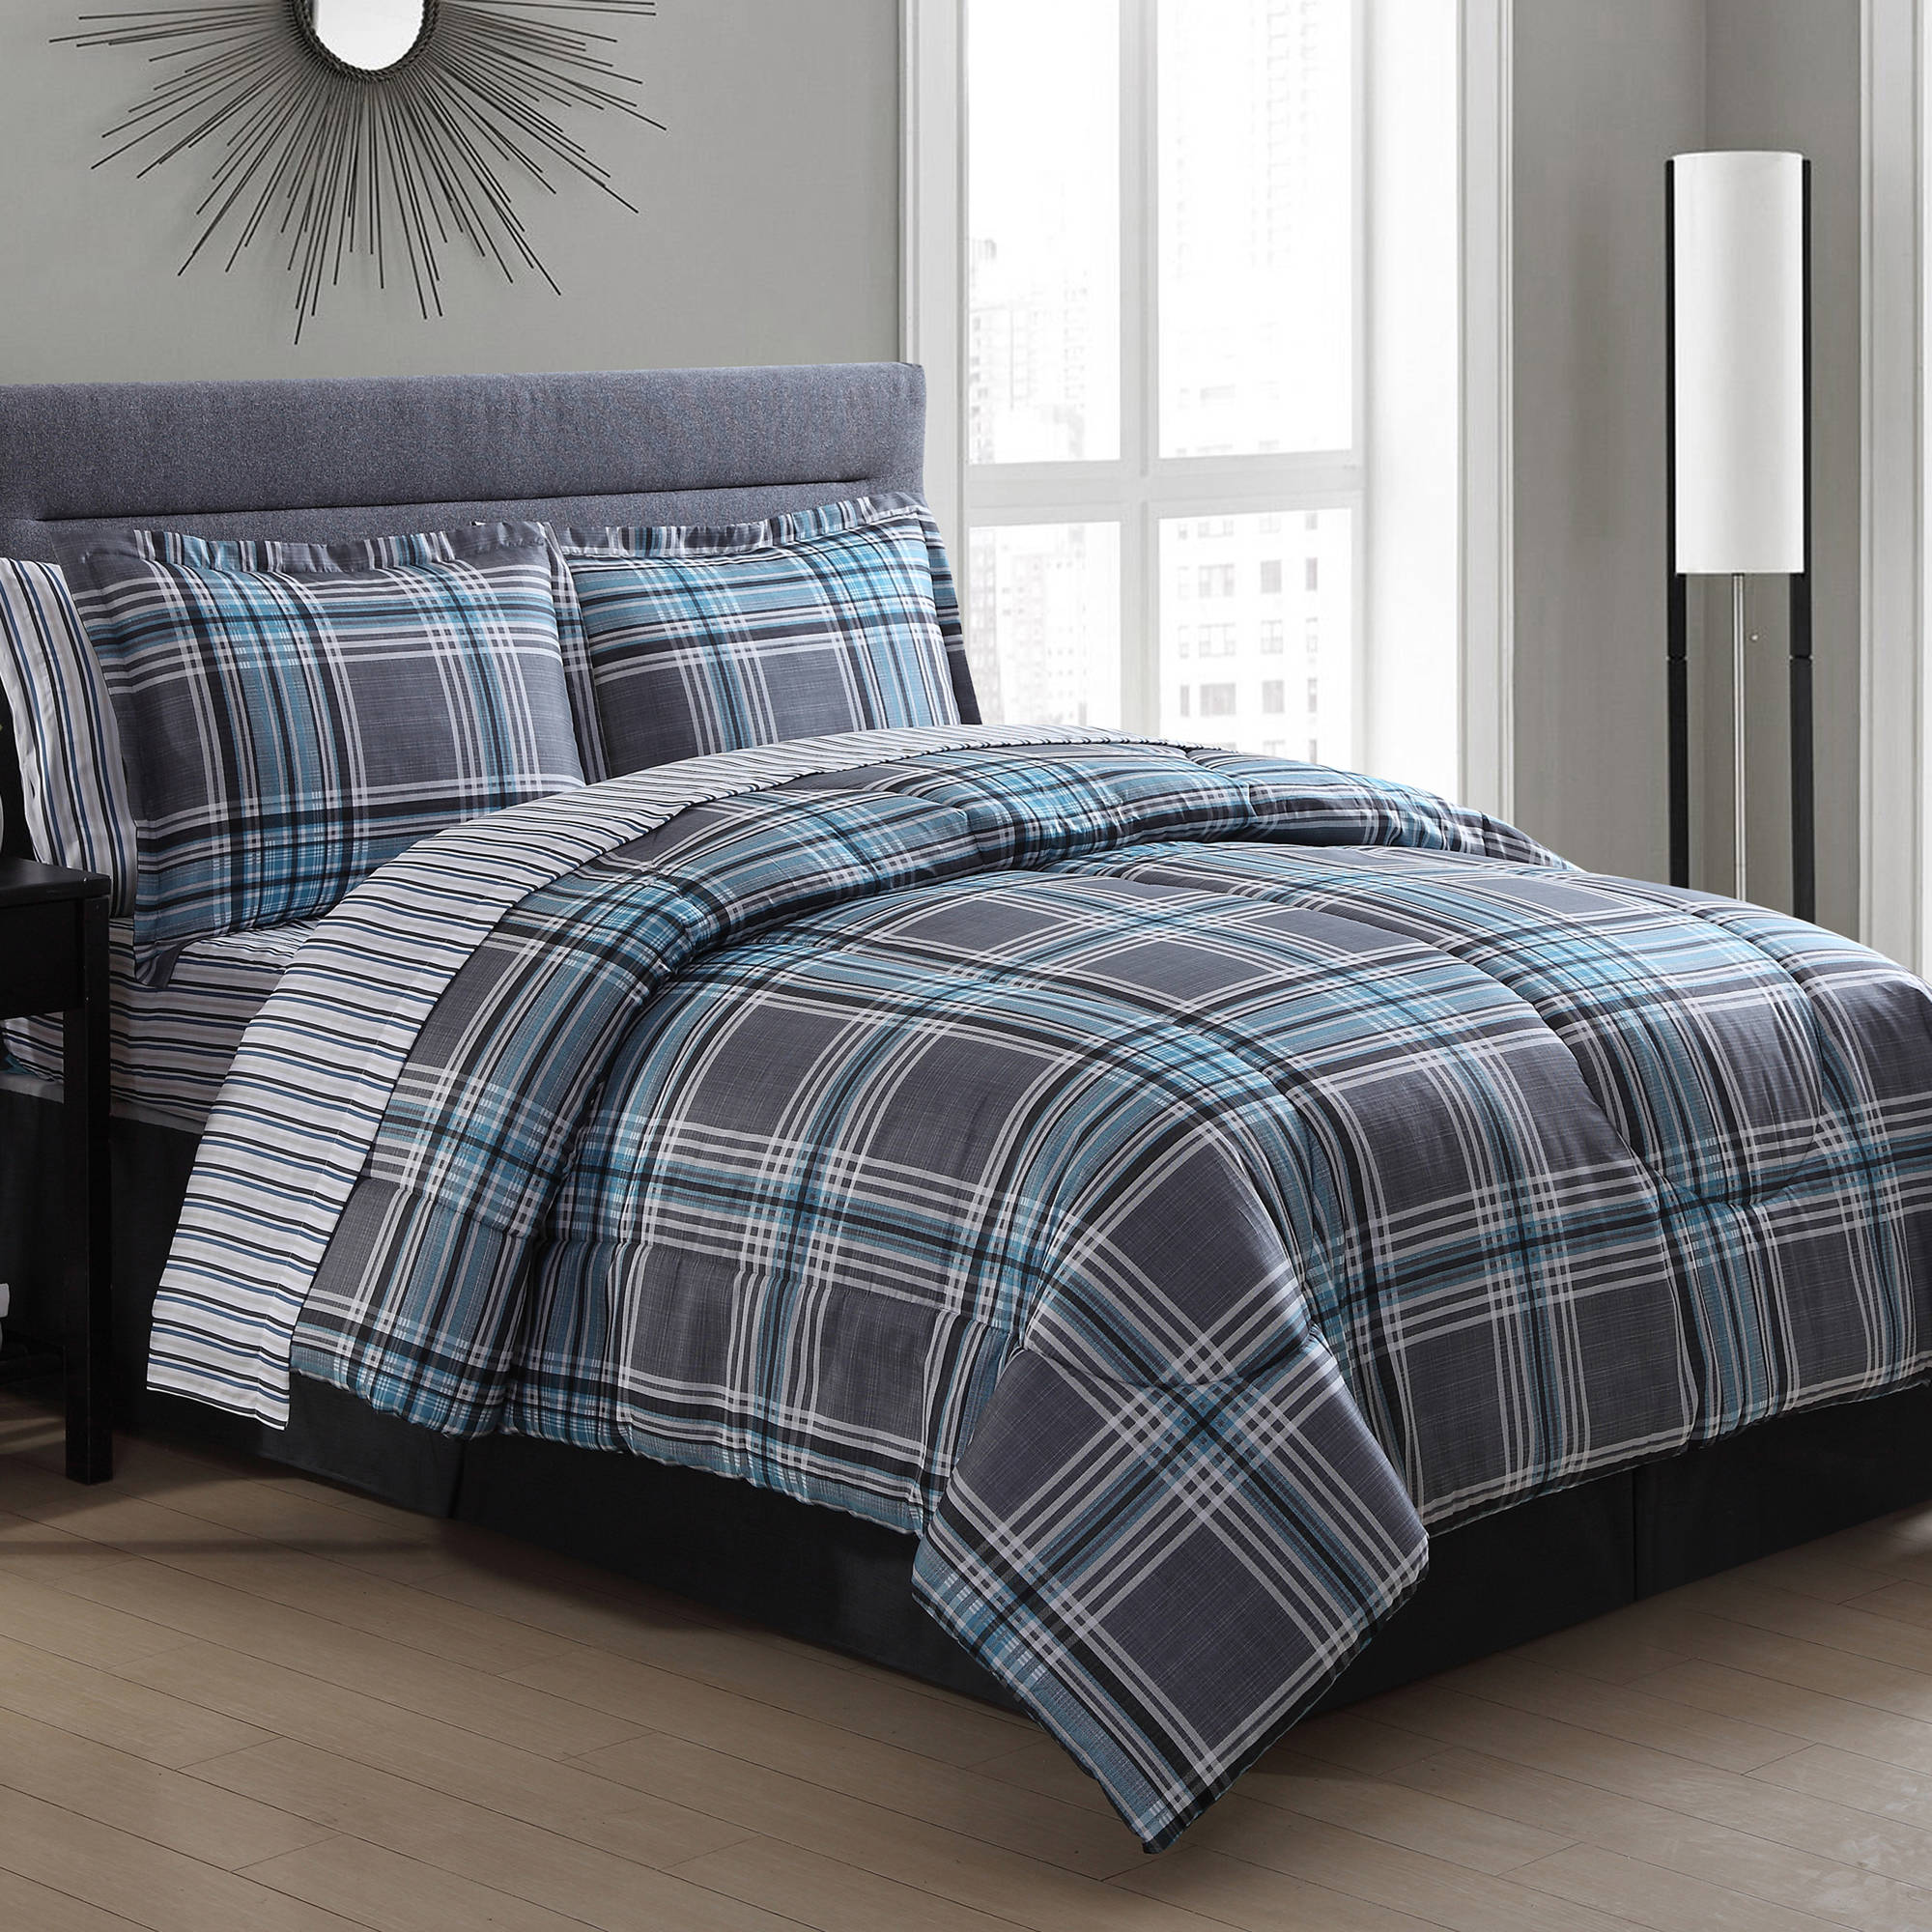 Chelsea Plaid Bed in a Bag Walmart